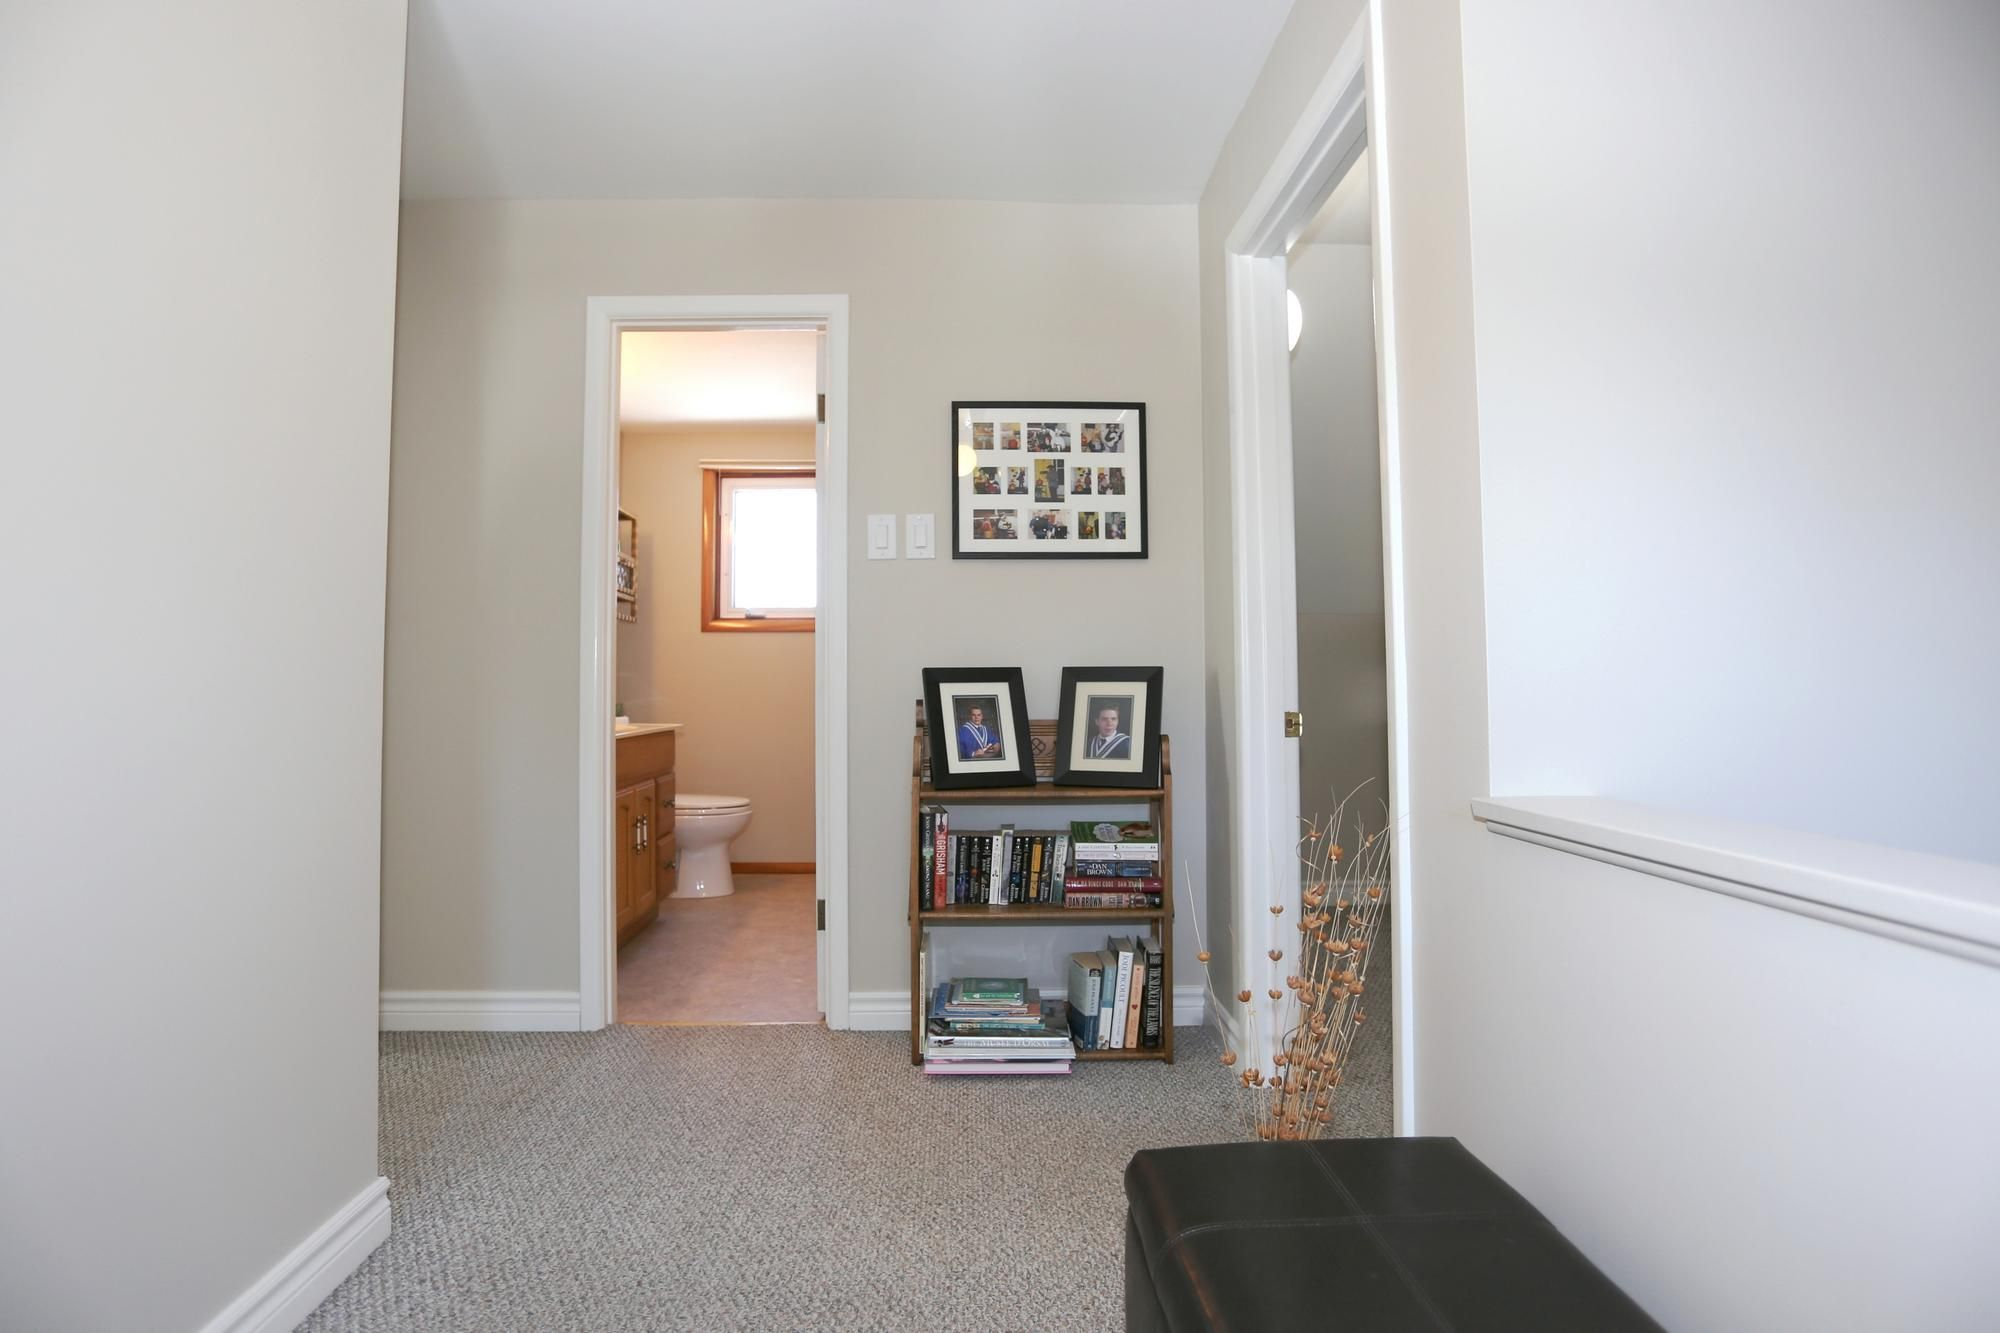 Photo 22: Photos: 349 Guildford Street in Winnipeg: St James Single Family Detached for sale (5E)  : MLS®# 1807654